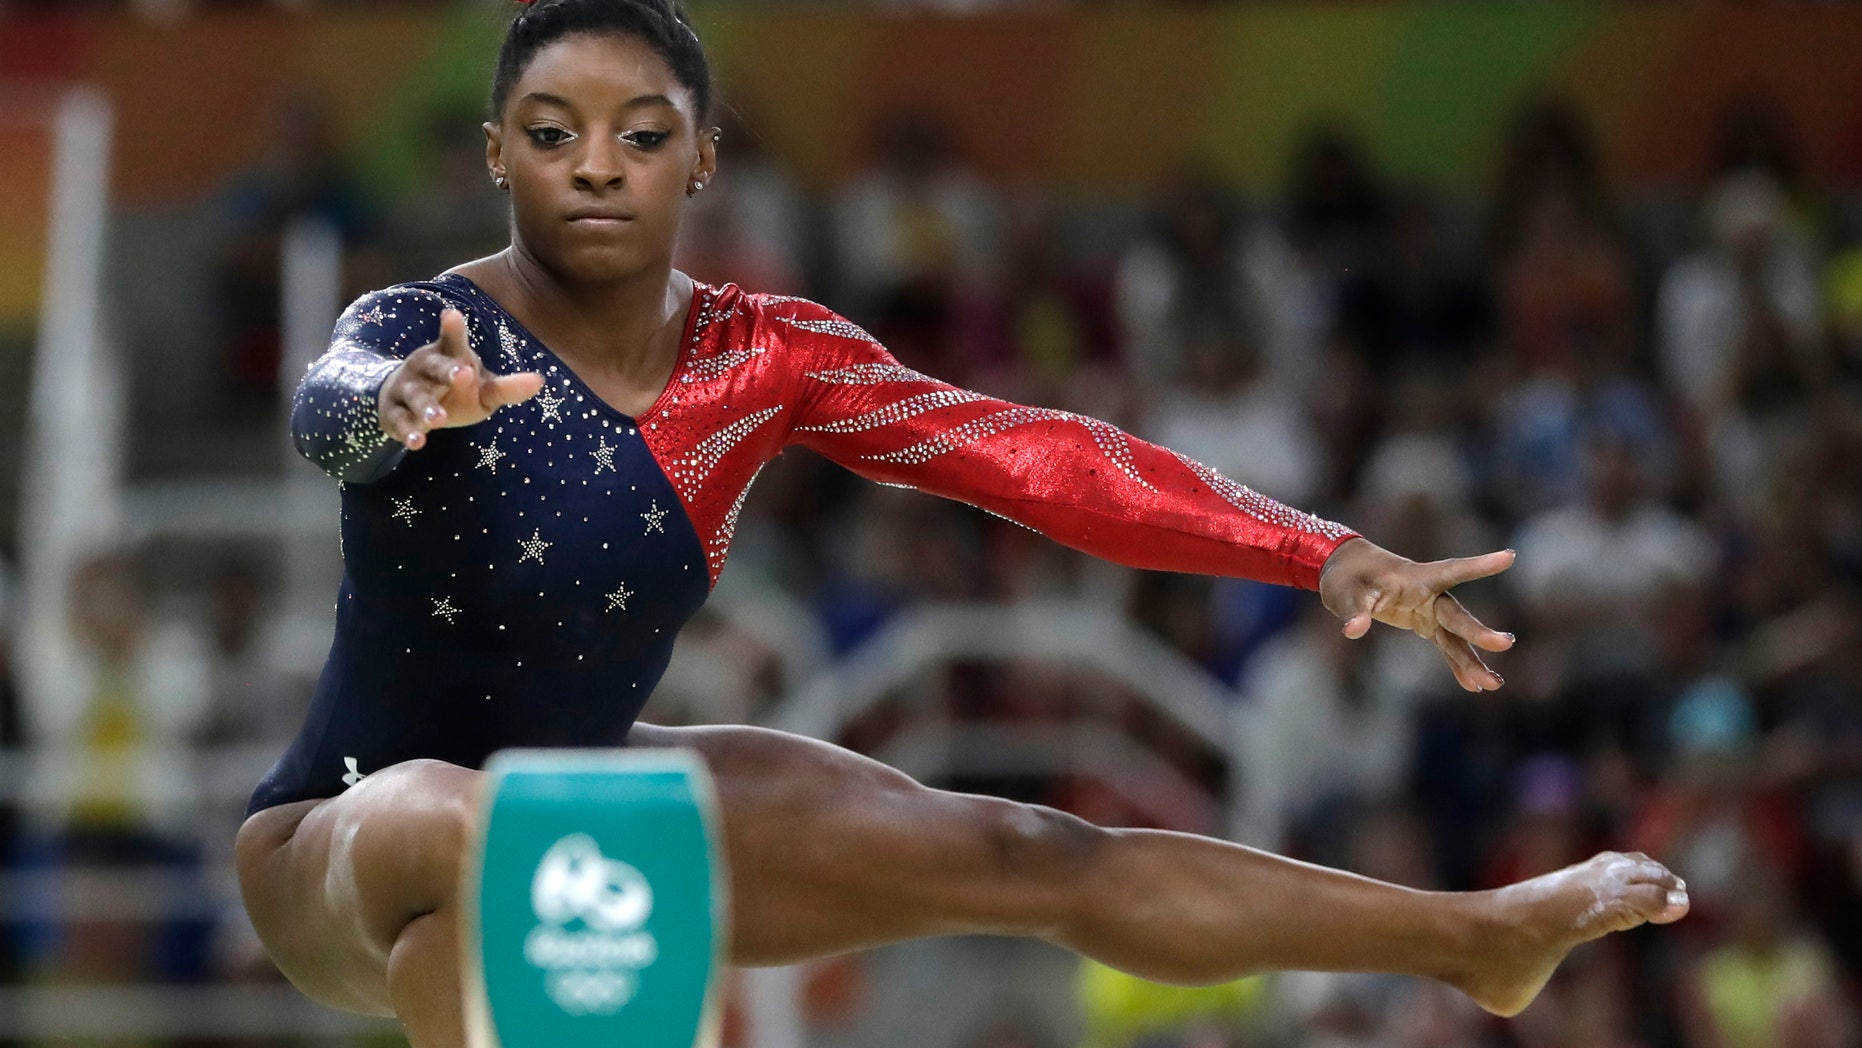 United States' Simone Biles performs on the balance beam during the artistic gymnastics women's qualification at the 2016 Summer Olympics in Rio de Janeiro, Brazil, Sunday, Aug. 7, 2016. (AP Photo/Julio Cortez)